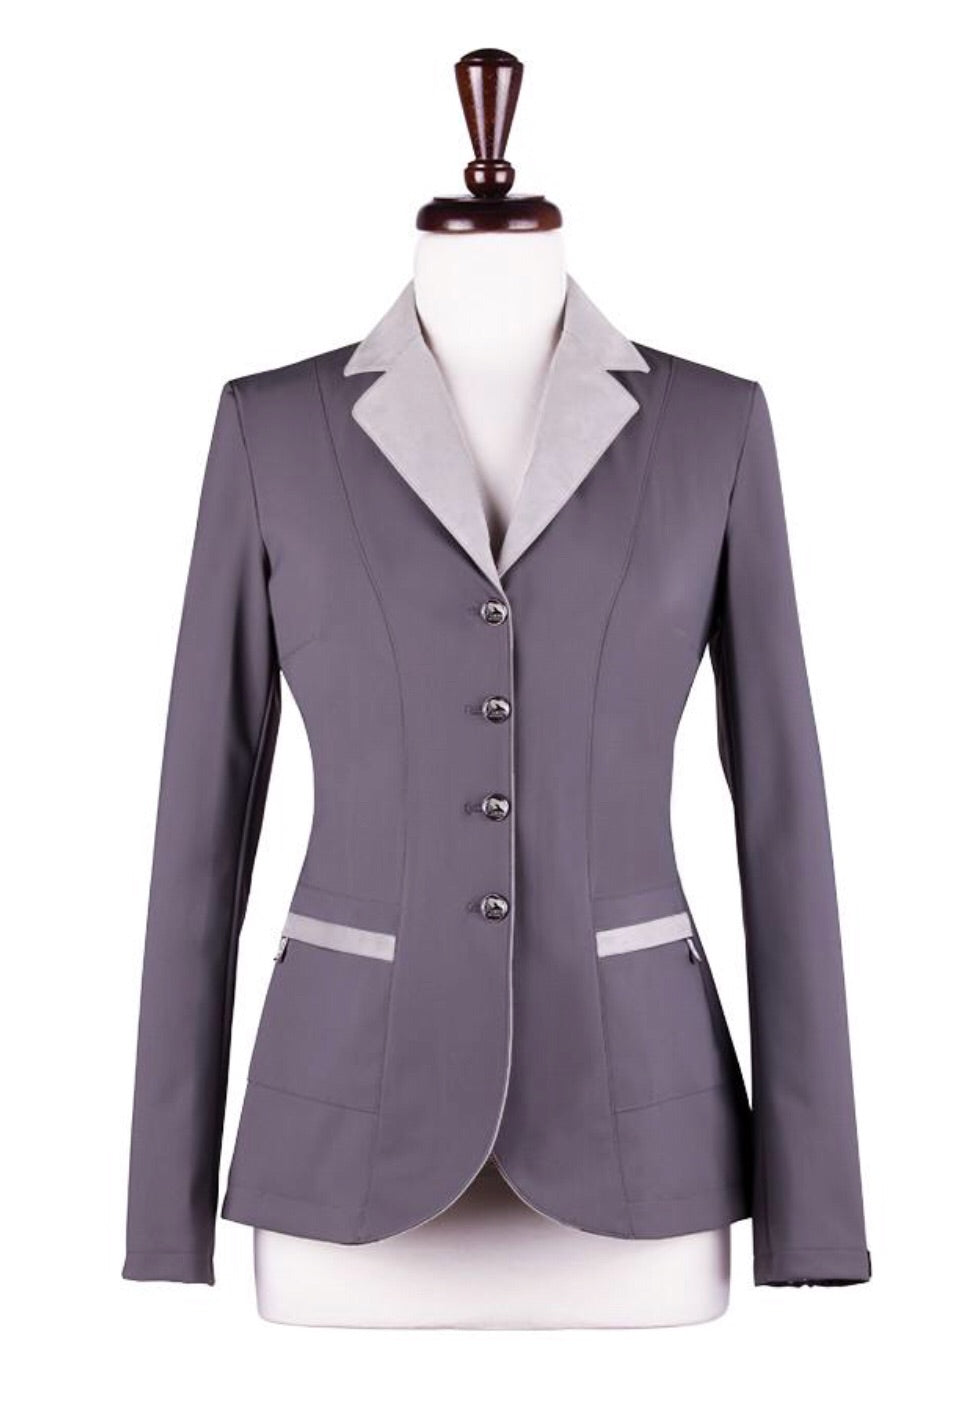 VERBANIA Show Coat